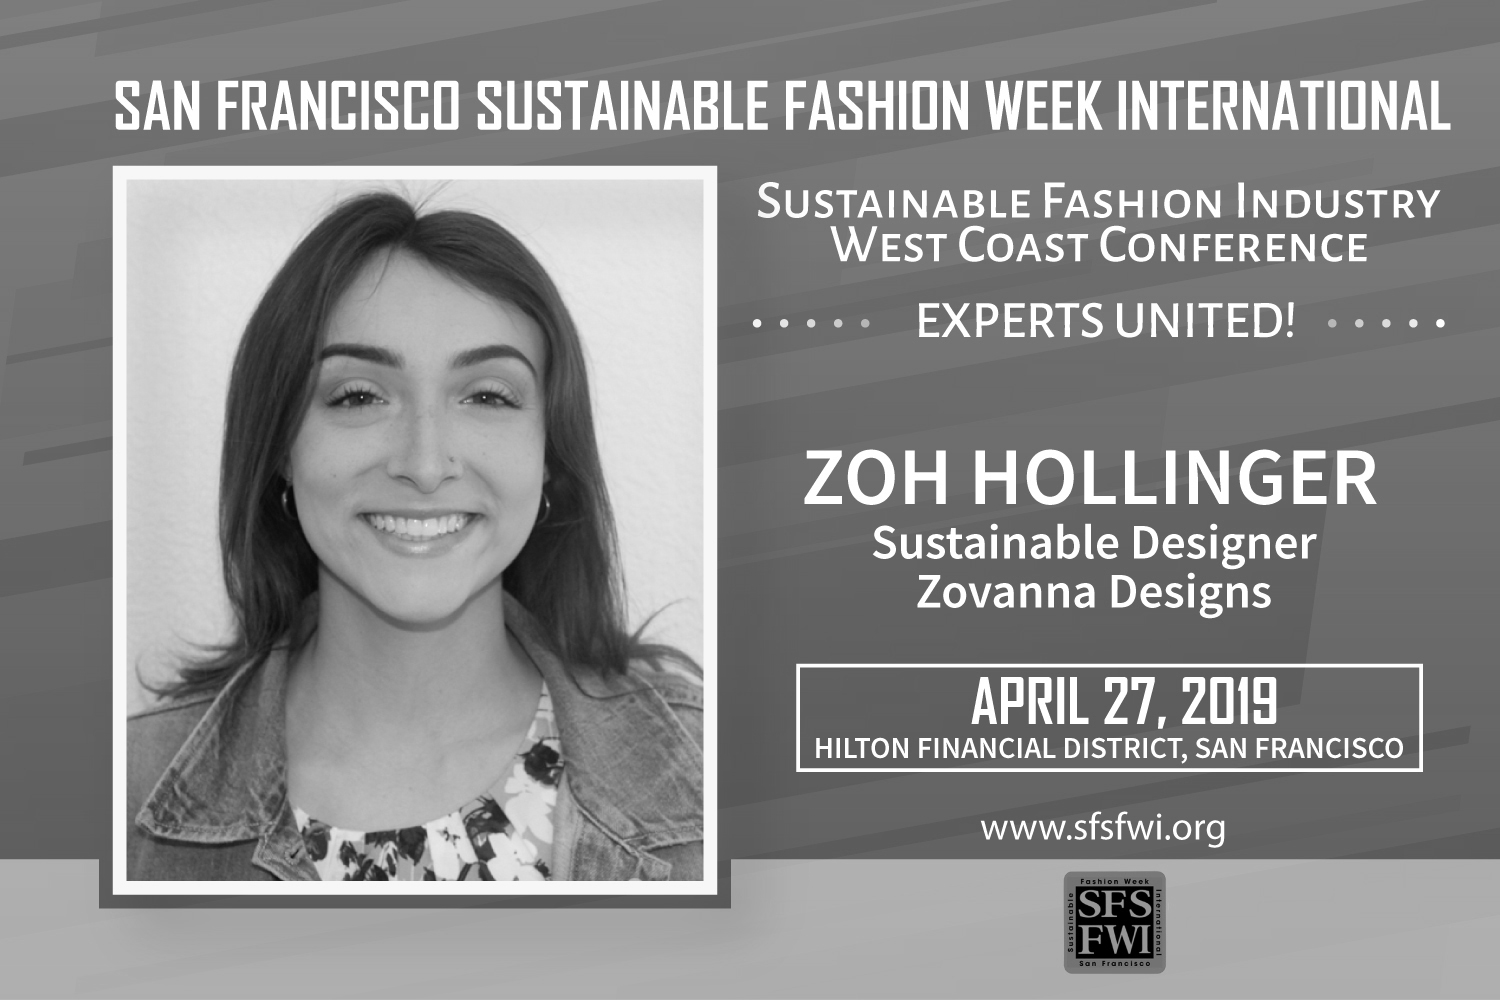 Zoh-Hollinger-Sustainable-Designer-Zovanna-Designs-B&W